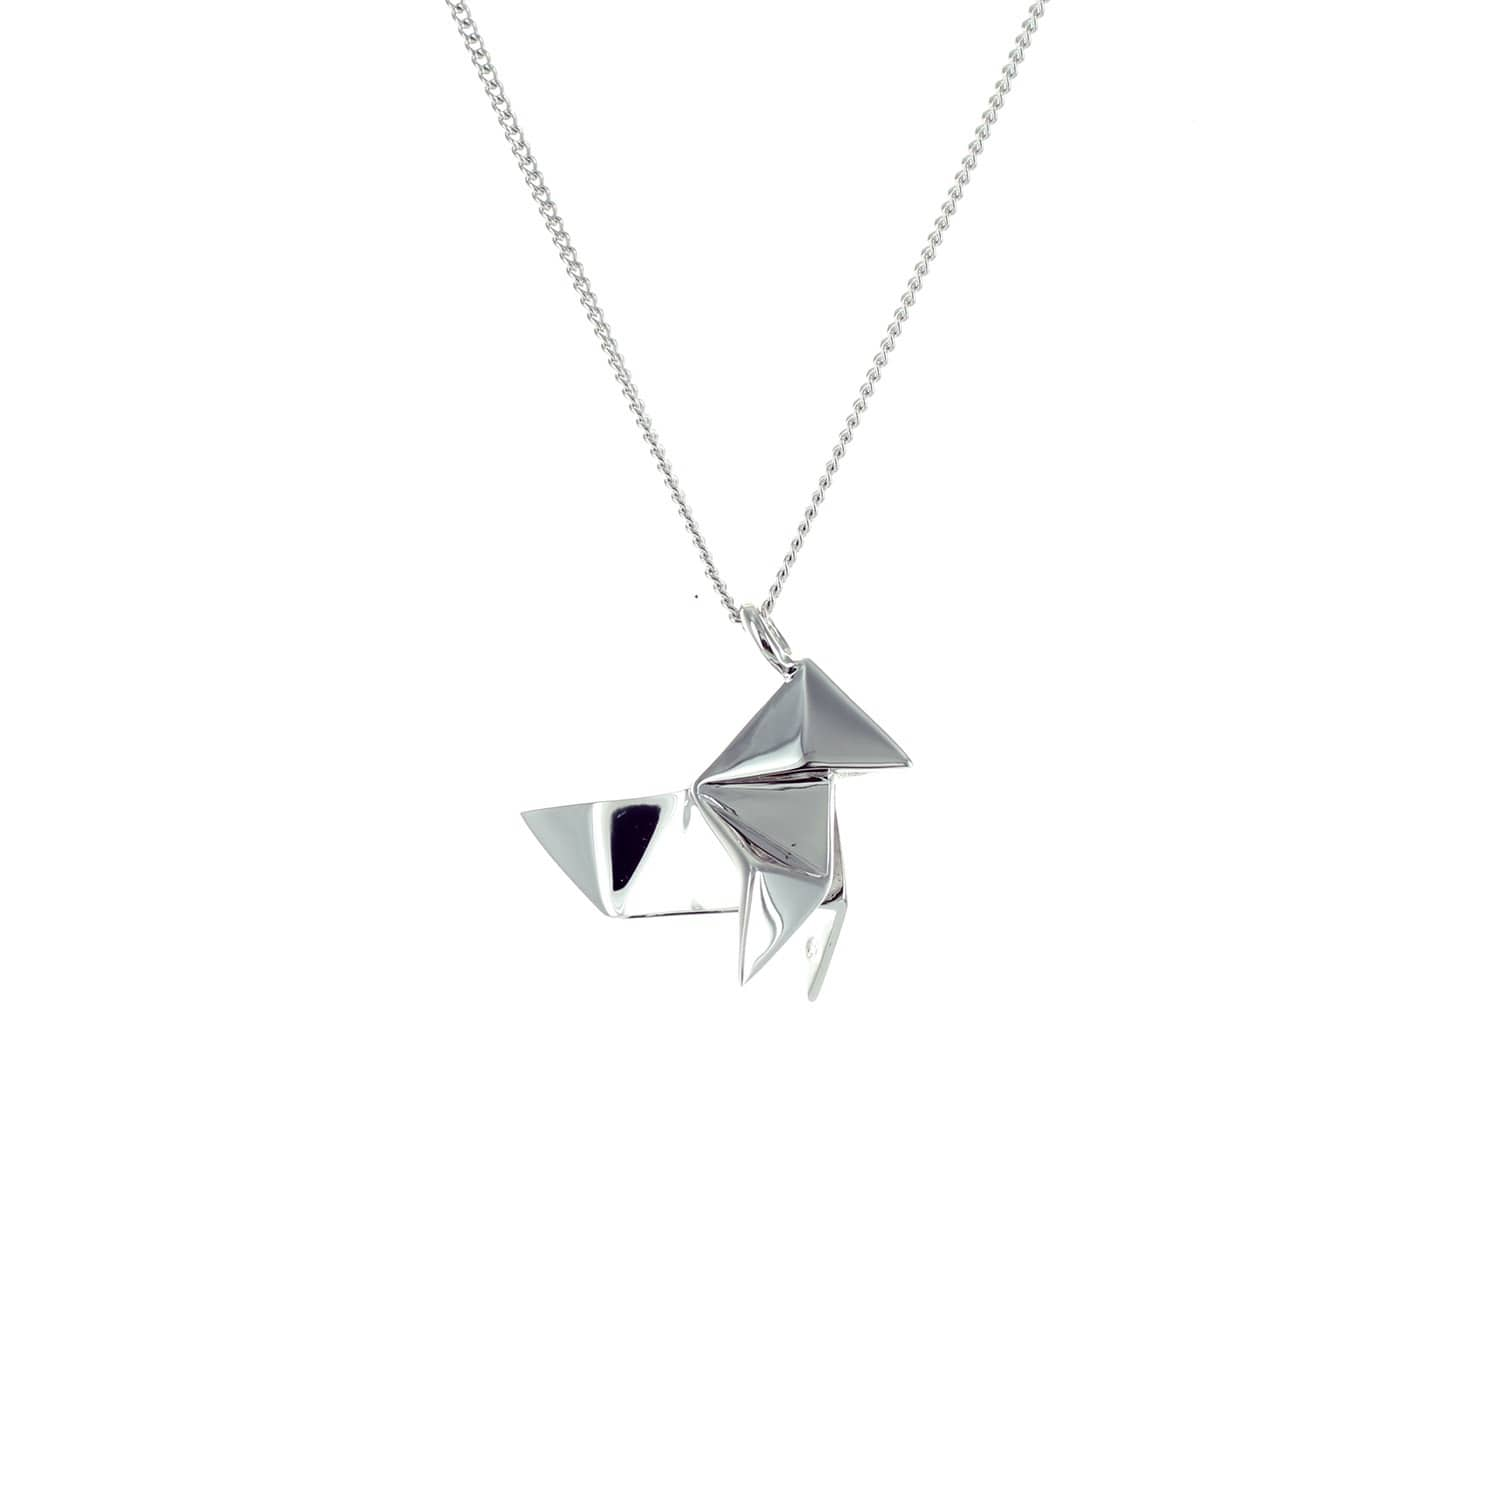 Origami Jewellery Sterling Silver & Gold Mini Cuckoo Origami Necklace